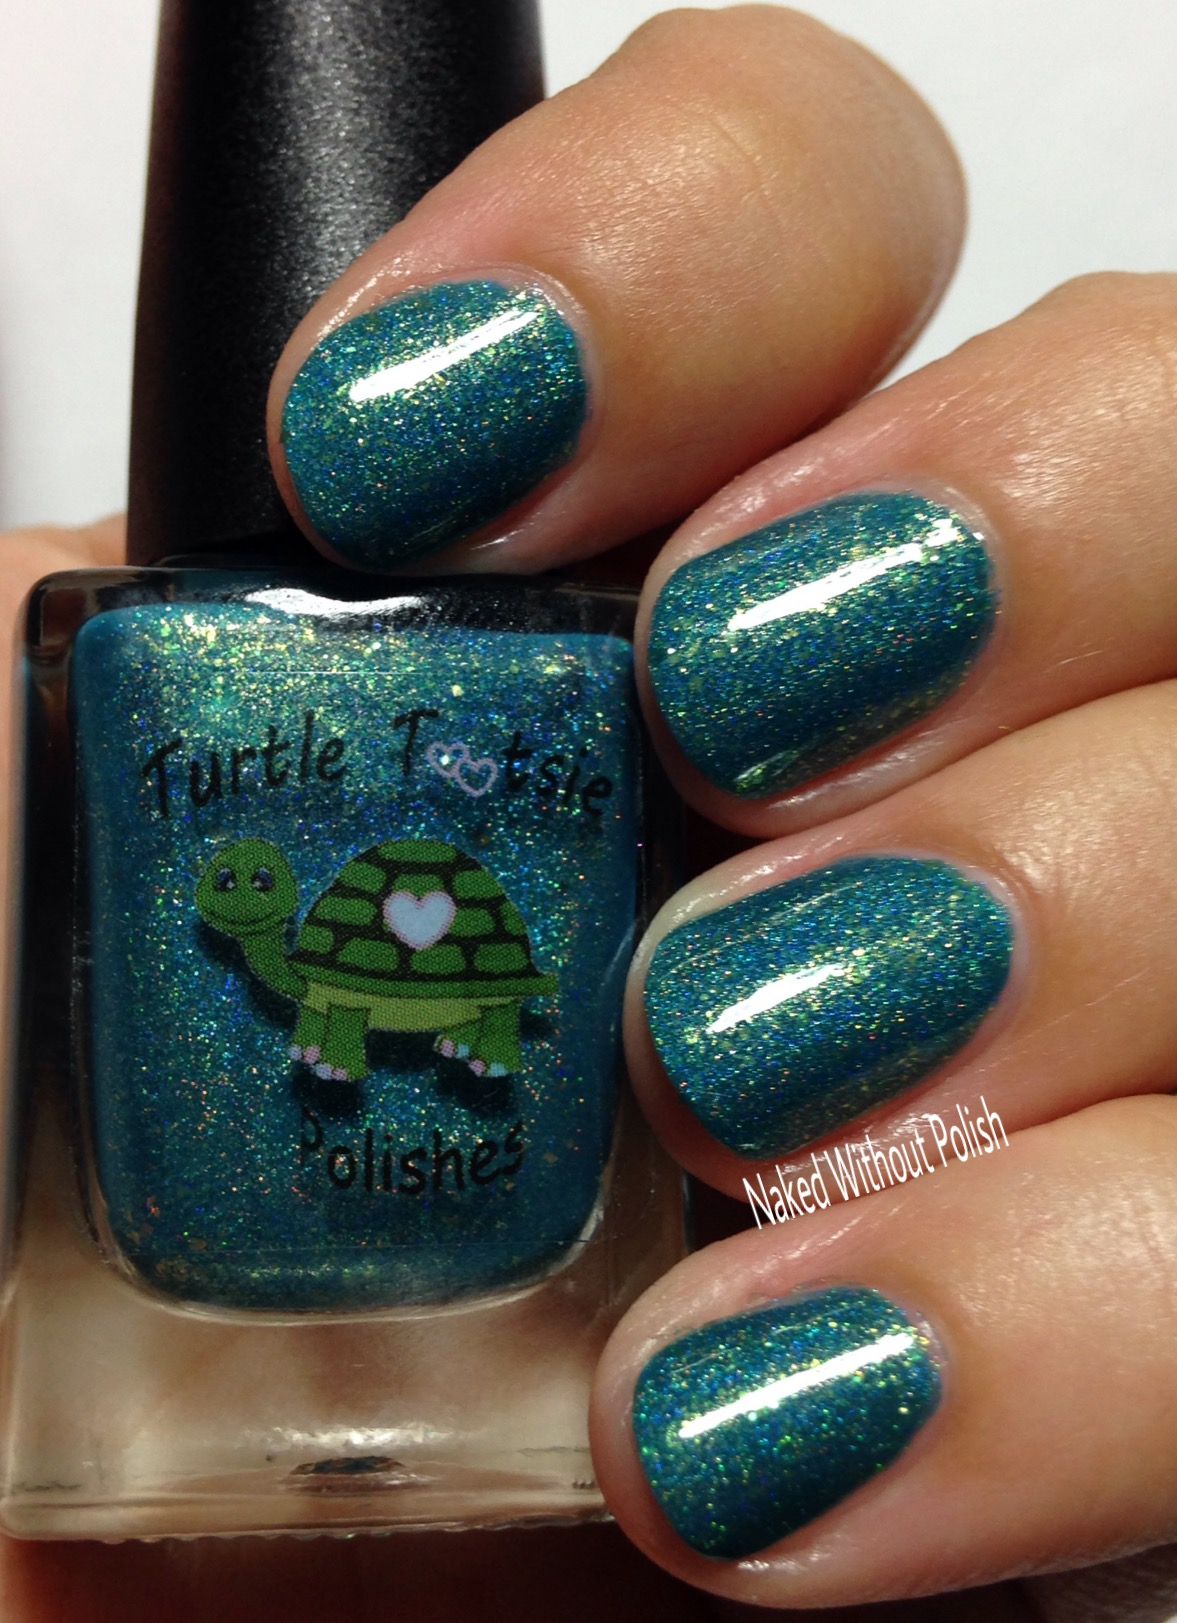 Turtle-Tootsie-Polishes-Summer-Dreams-Ripped-at-the-Seams-11